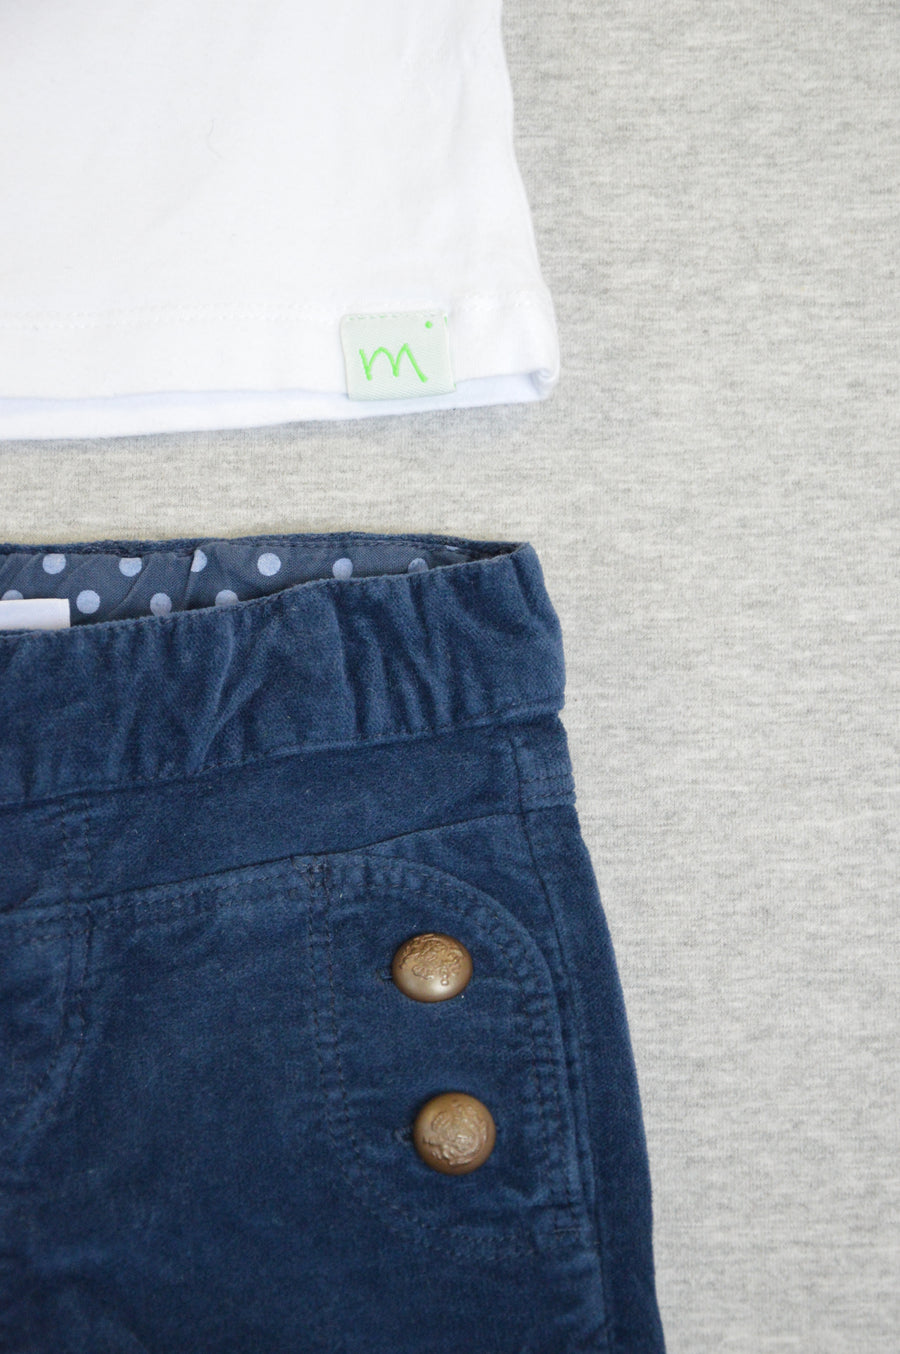 Zara & Minti - nearly new - white t-shirt & blue velvet pants, size 0-6m